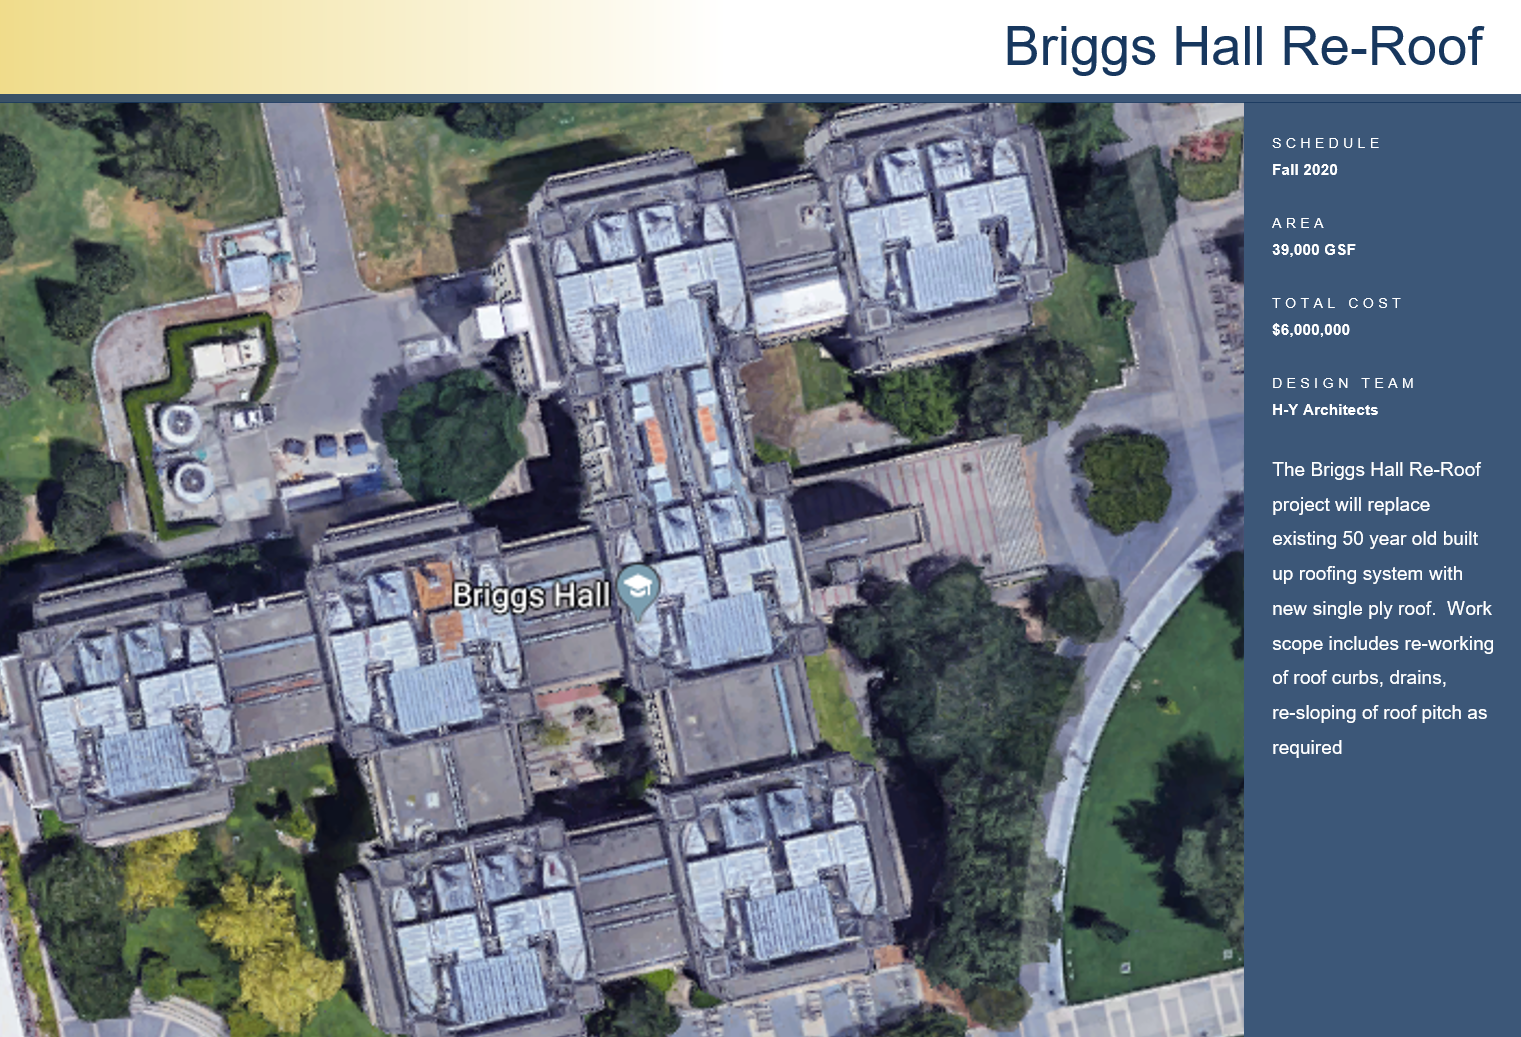 Briggs Hall Re-Roof